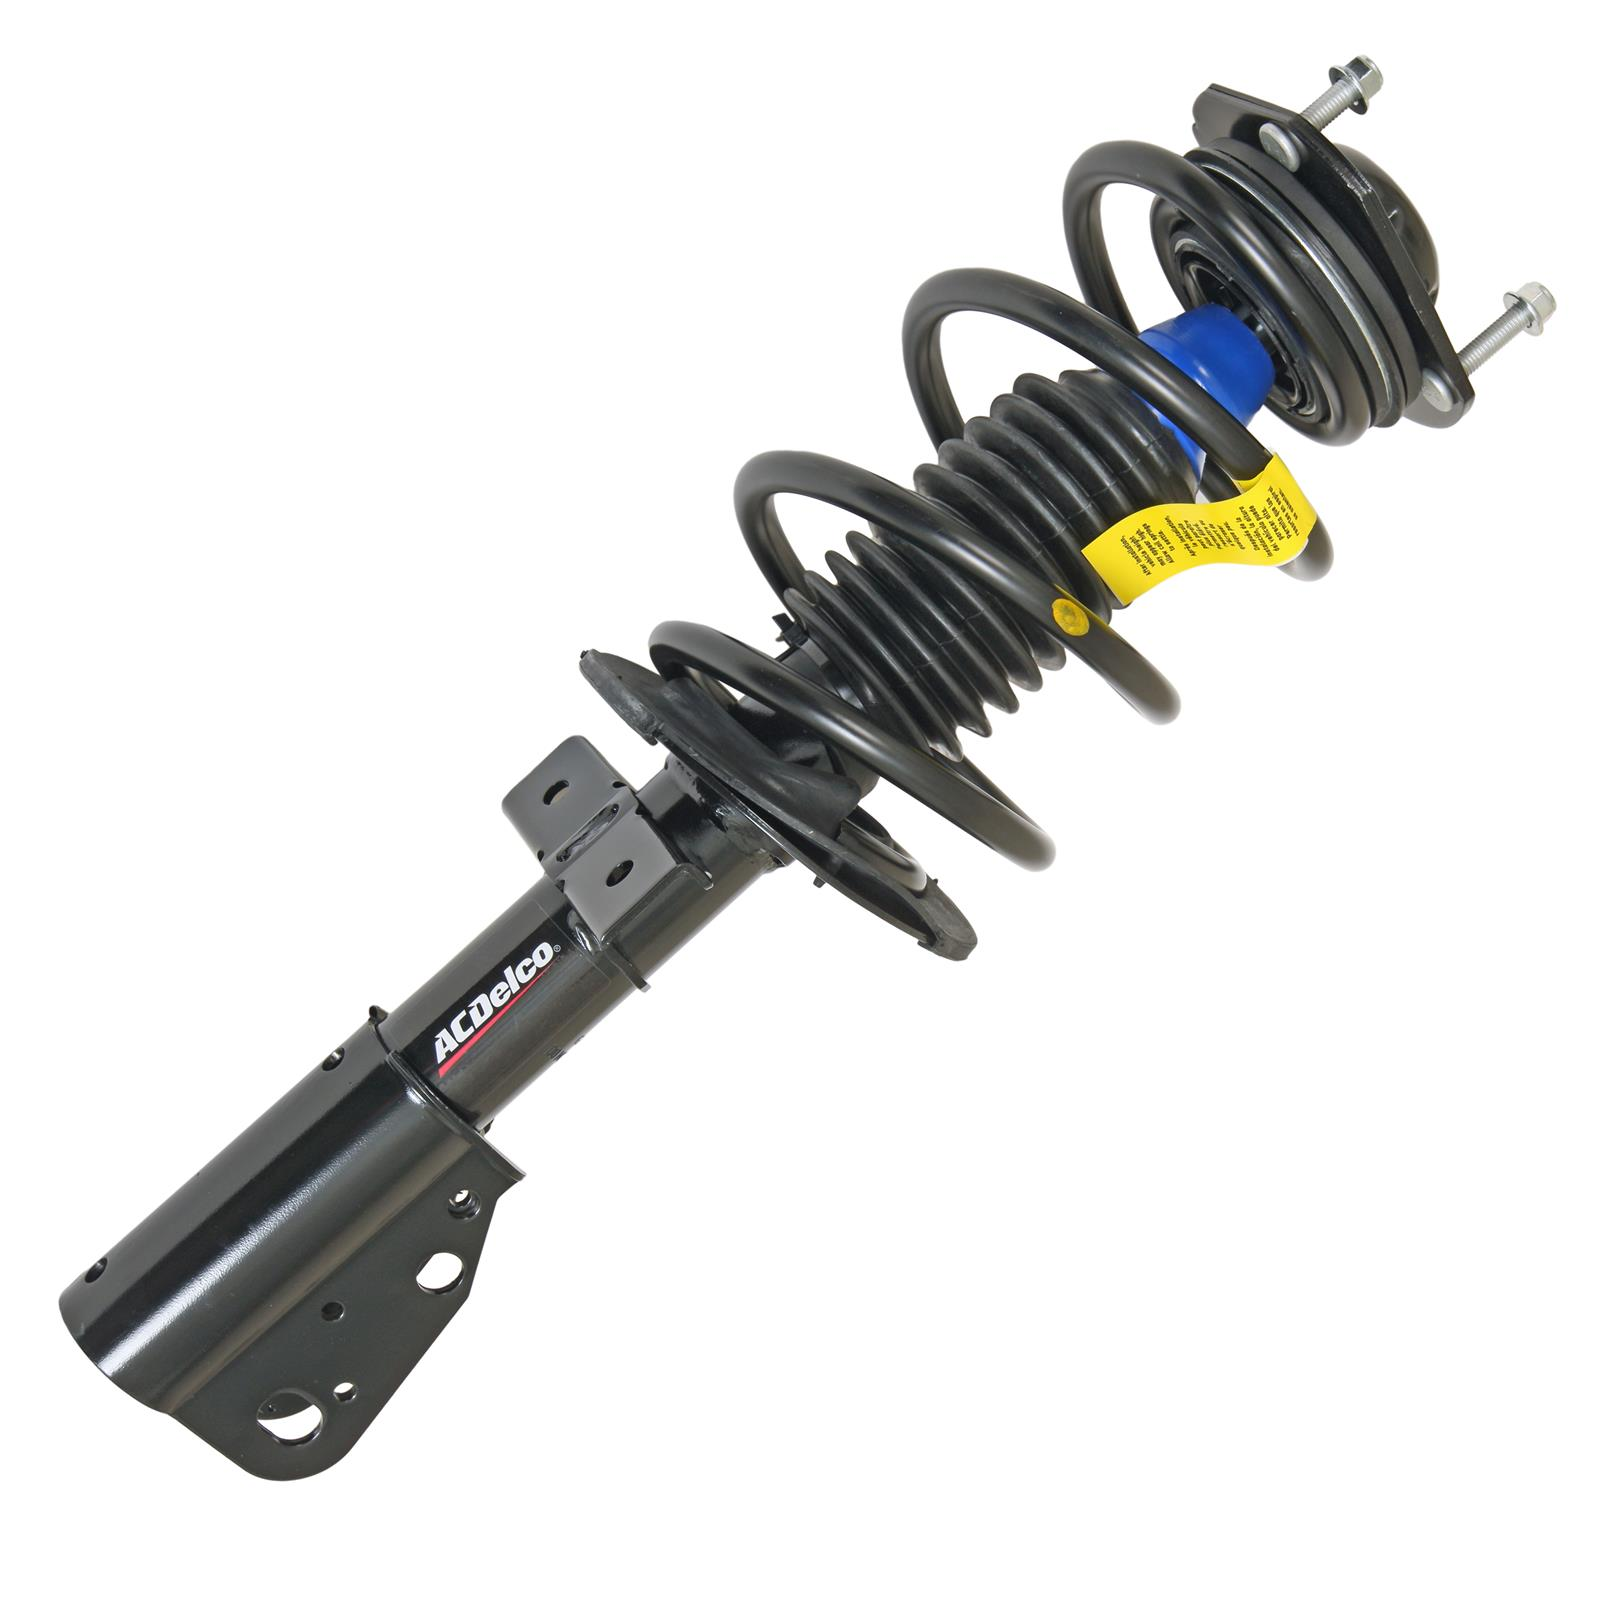 ACDelco 903-019RS Professional Ready Strut Premium Gas Charged Rear Passenger Side Strut and Coil Spring Assembly